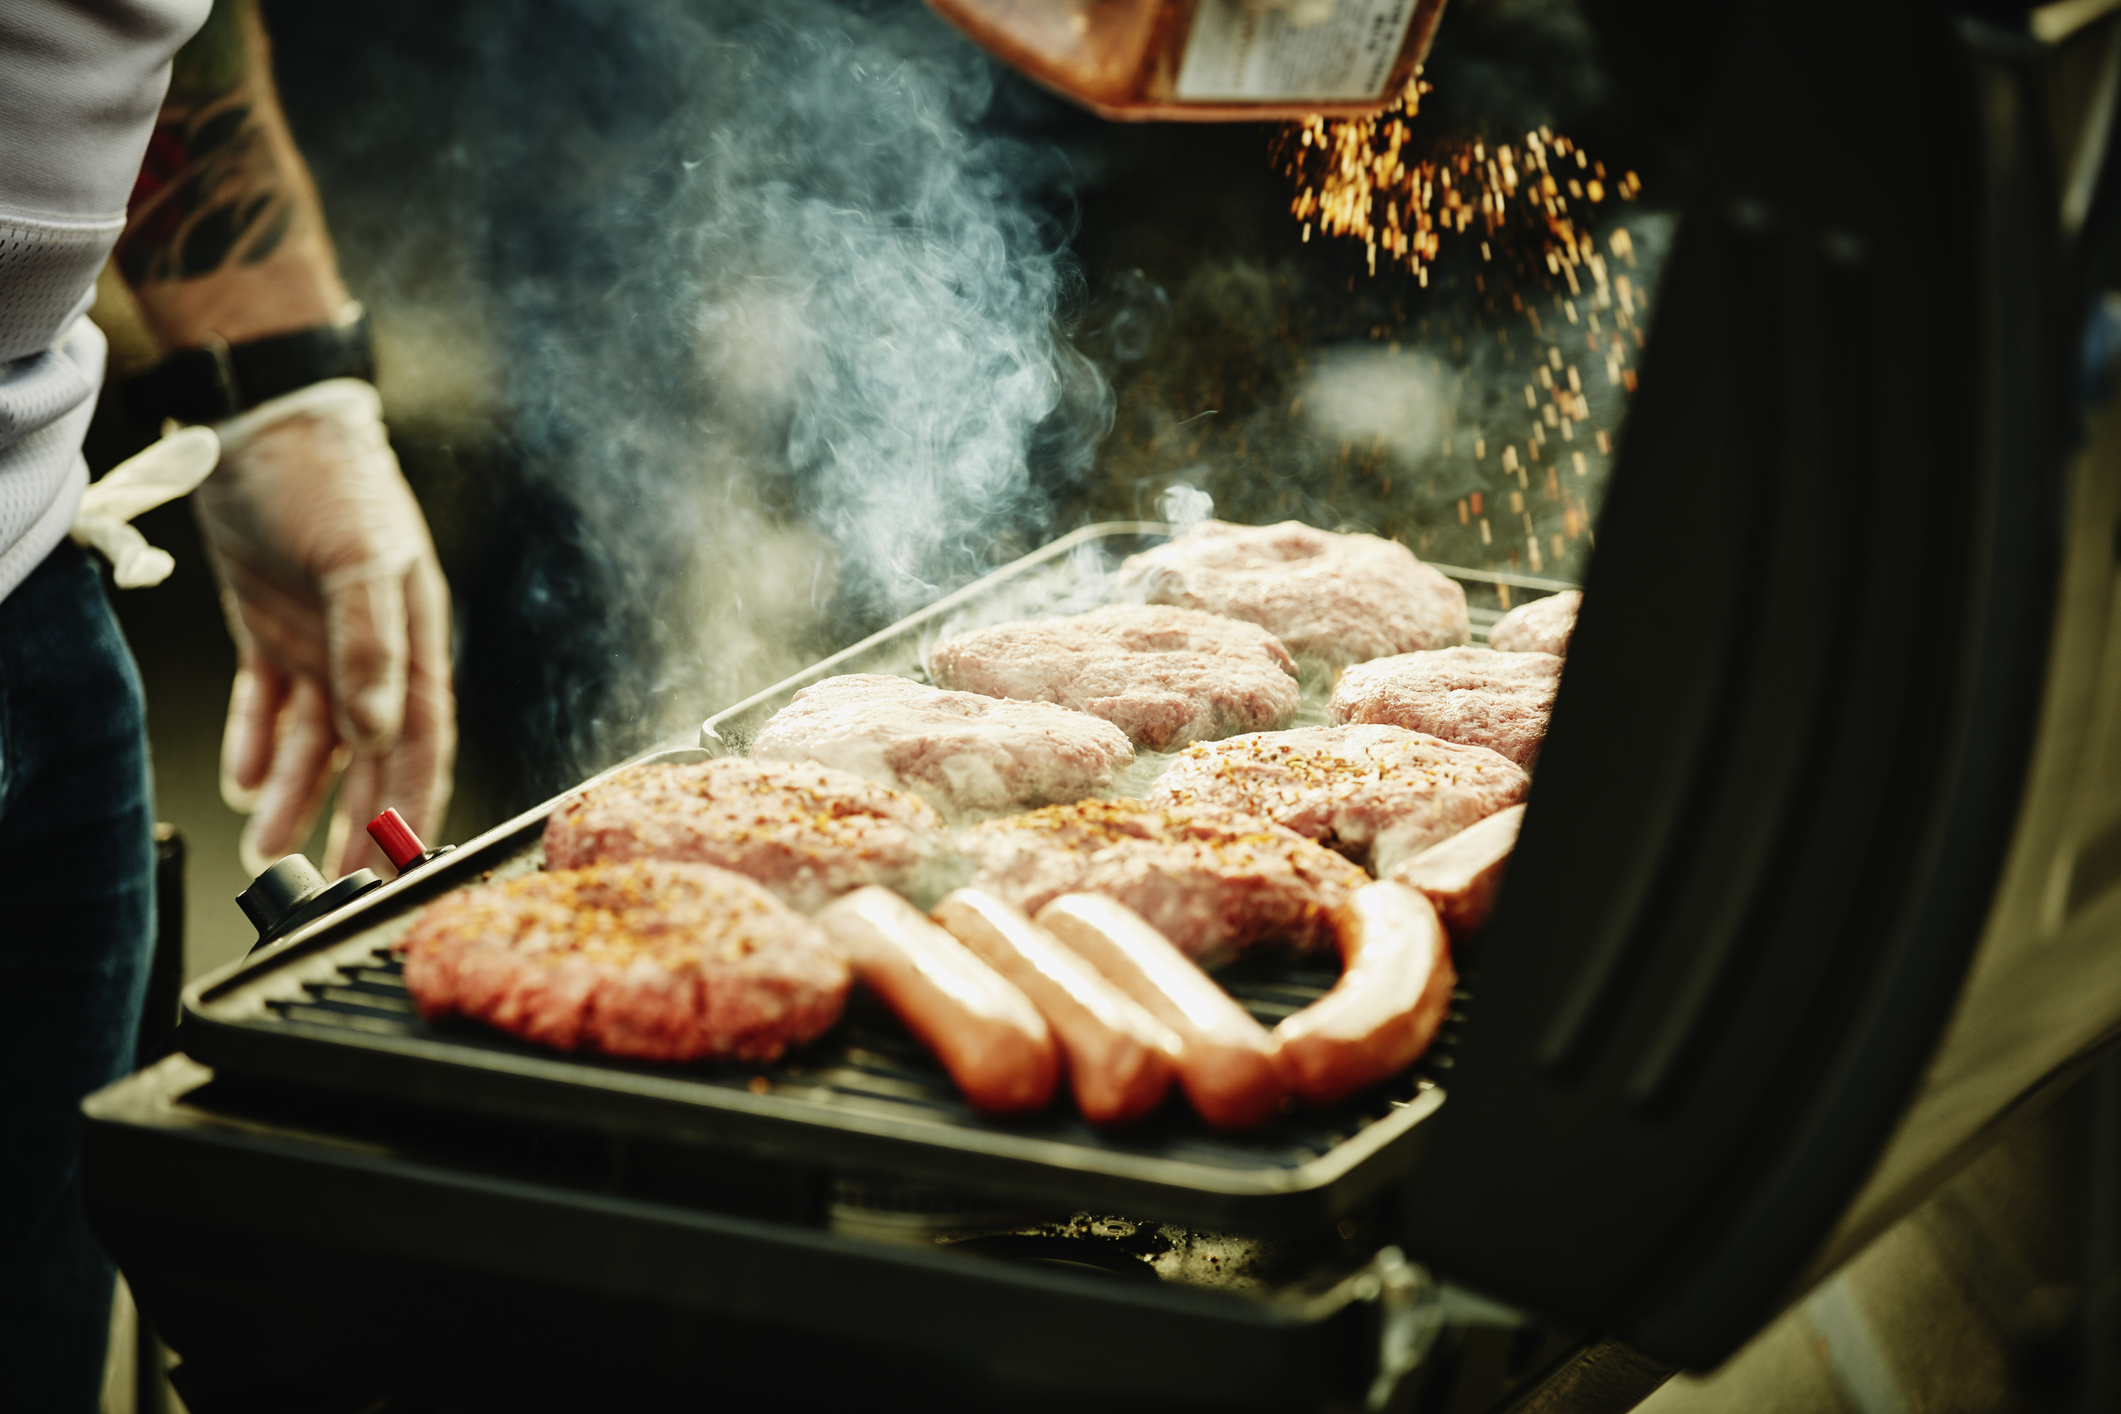 Man seasoning burgers and hot dogs on barbecue during tailgating party